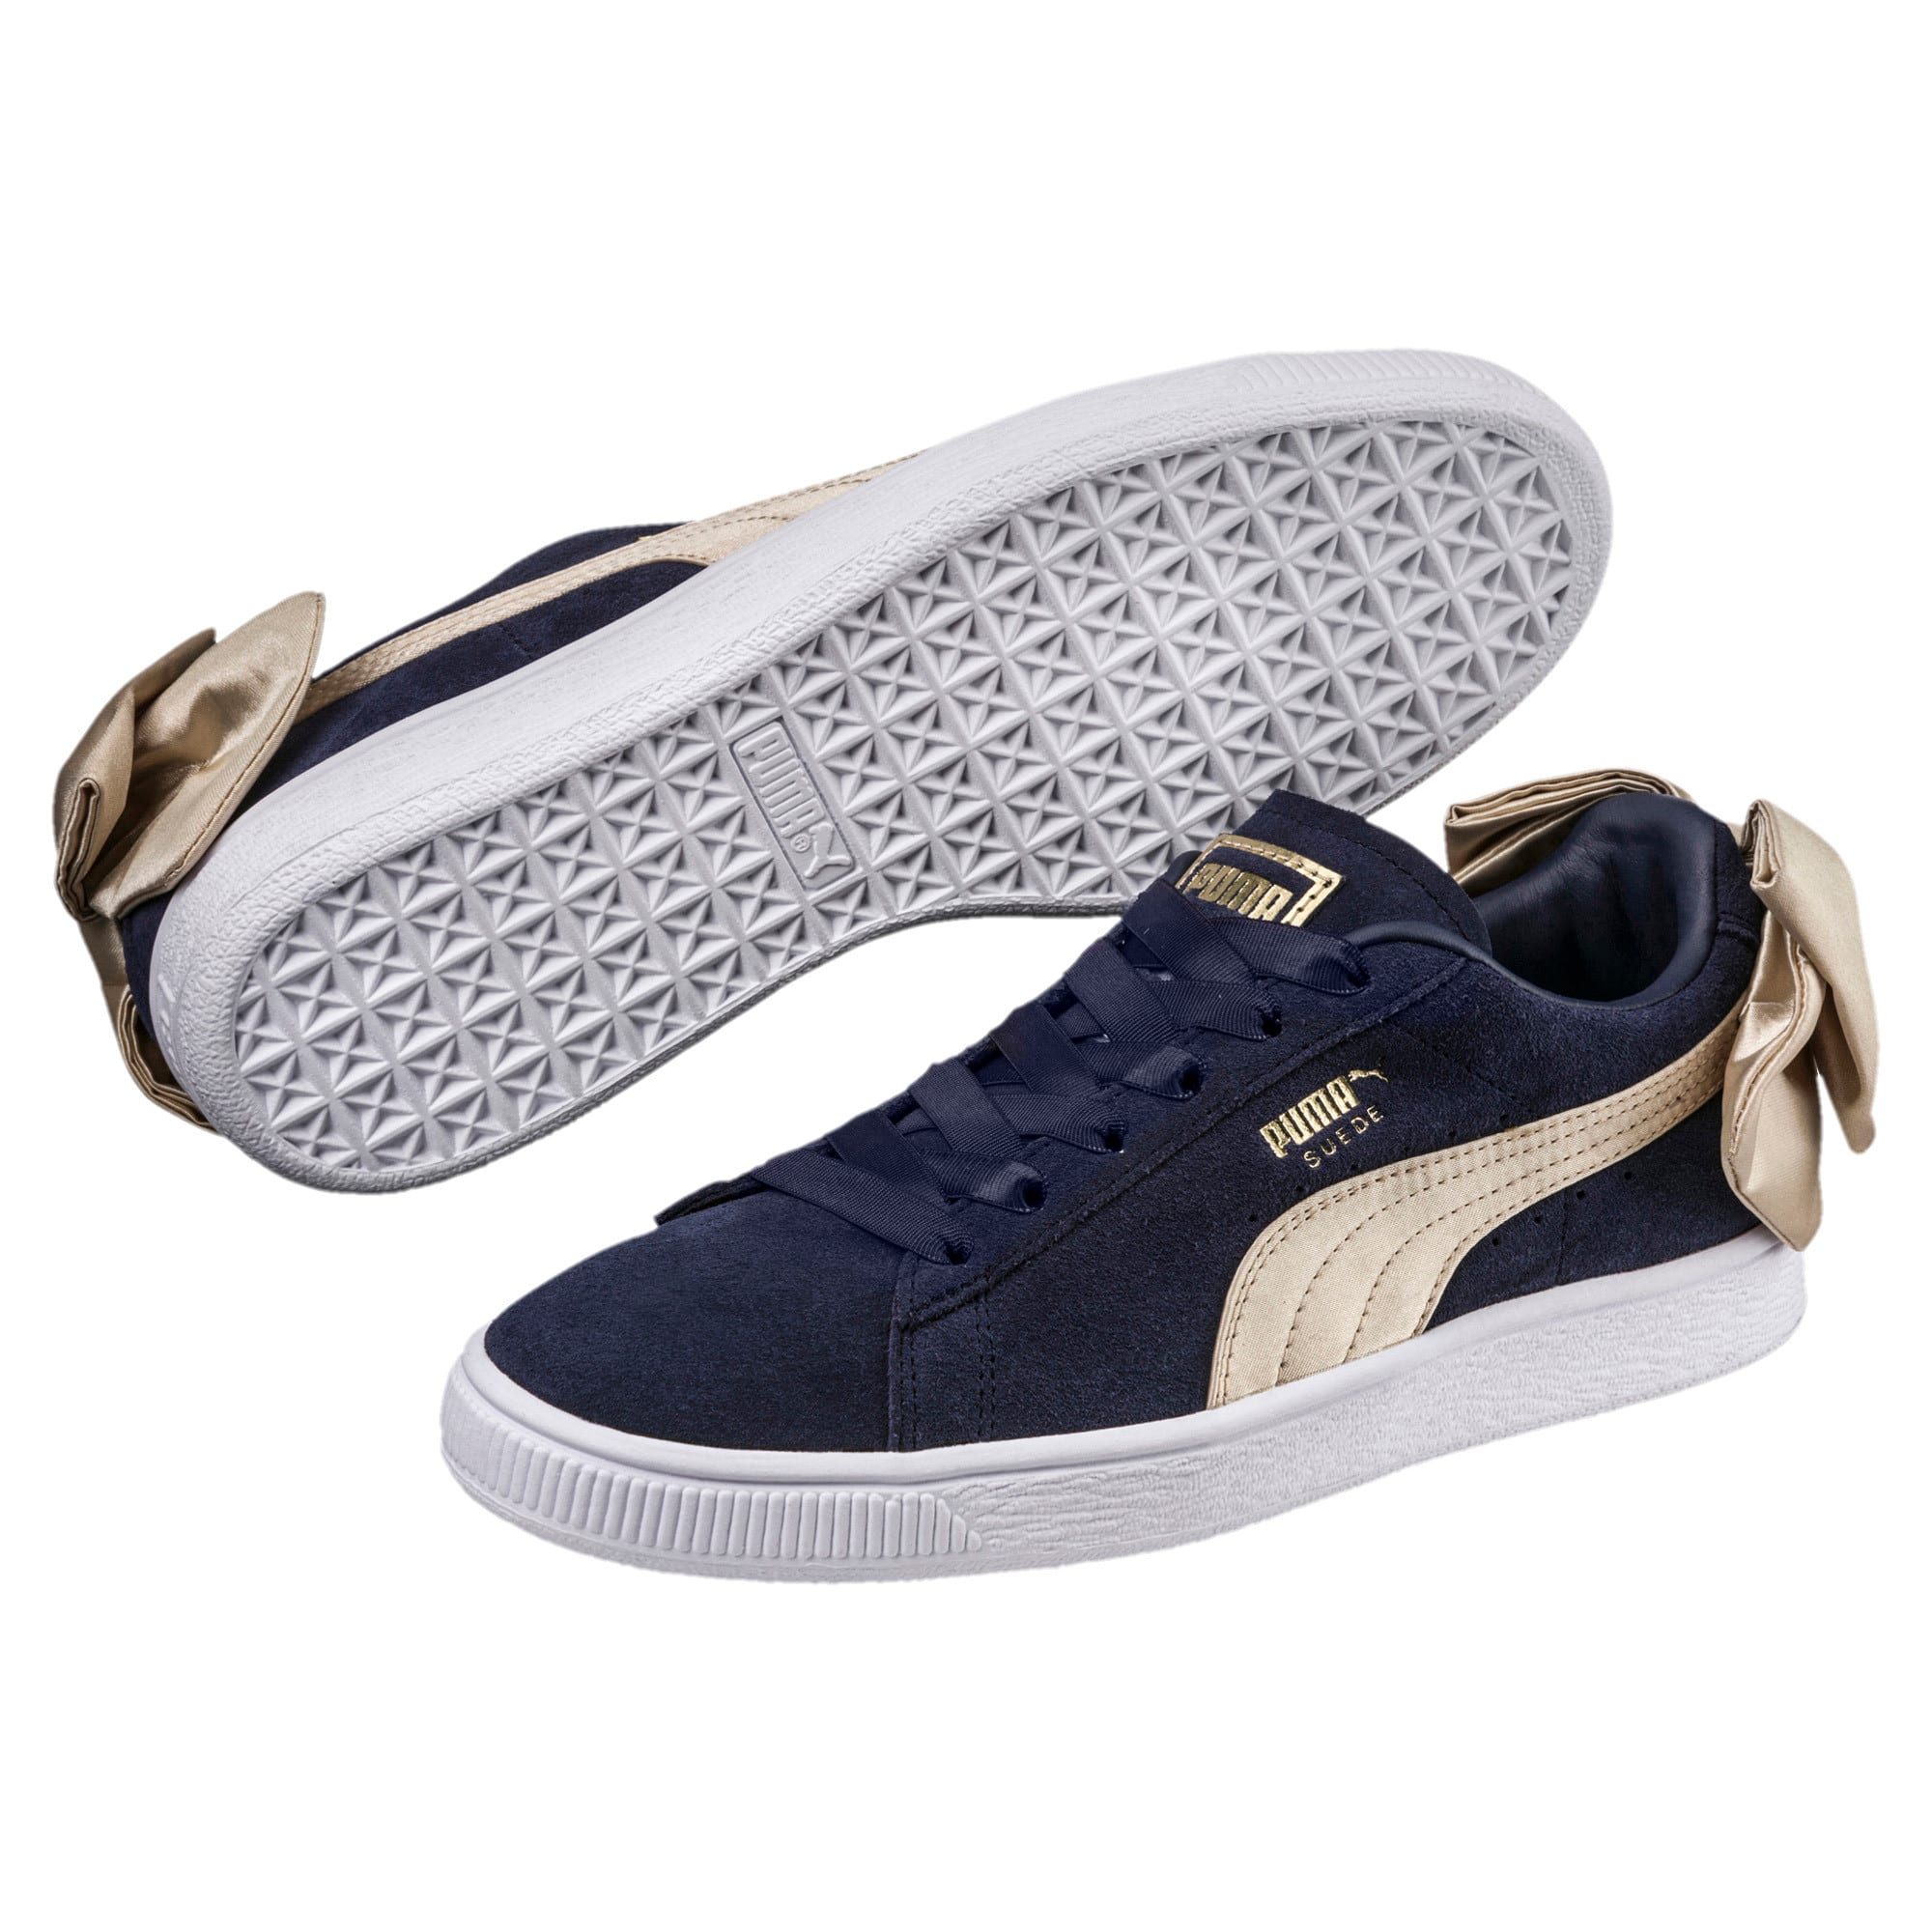 Thumbnail 2 of Suede Bow Varsity Women's Trainers, Peacoat-Metallic Gold, medium-IND